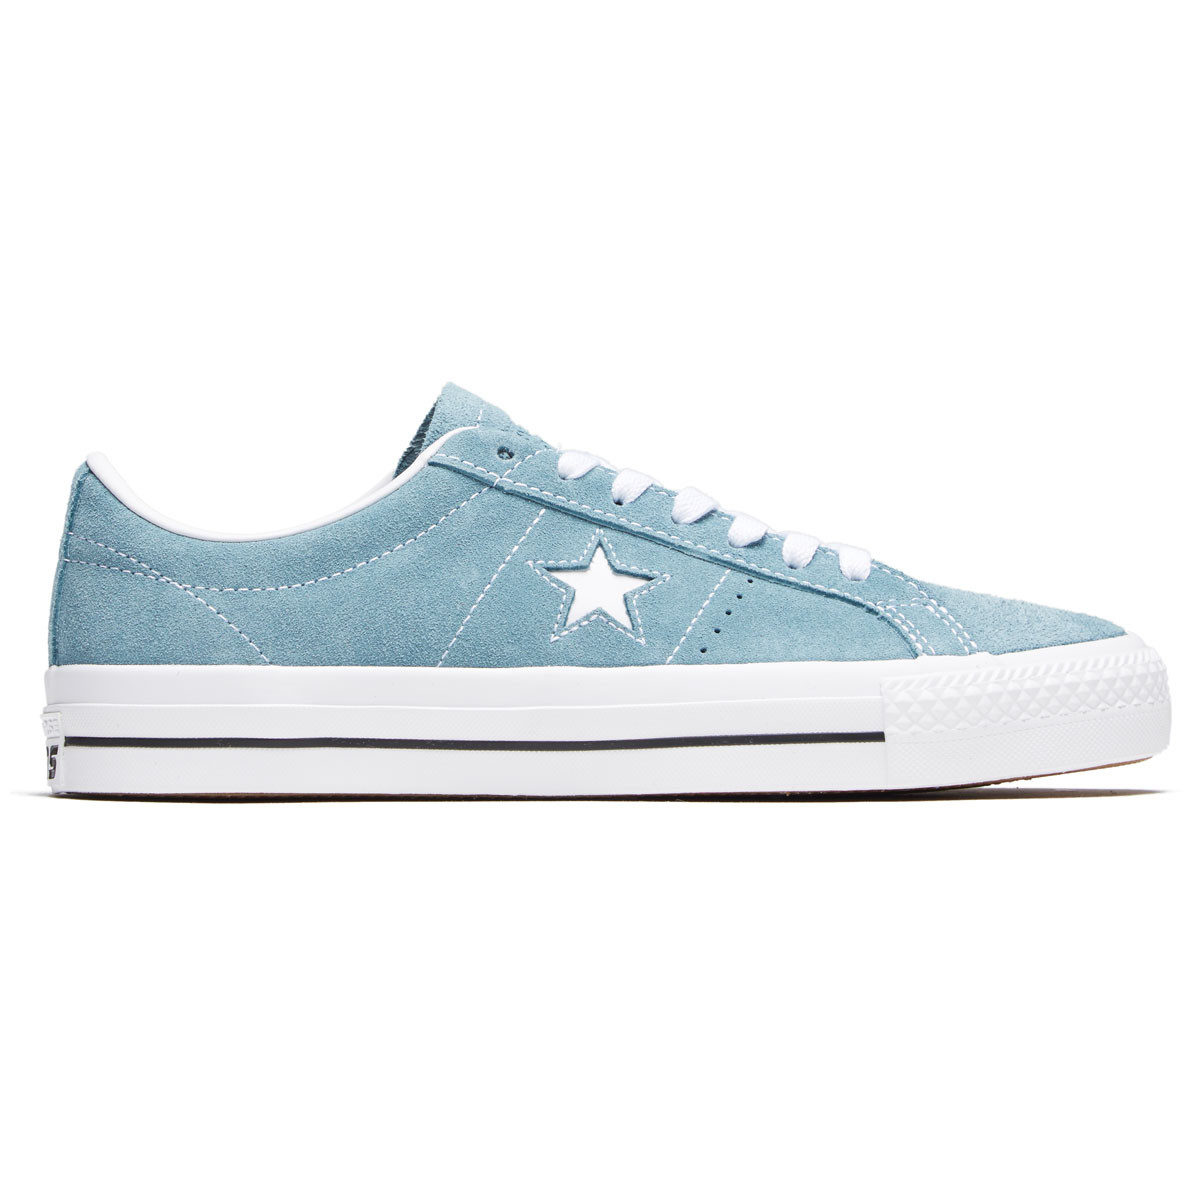 63dabc7a2c3f Converse One Star Pro Shoes - Nightime Navy Pink Freeze White - 10